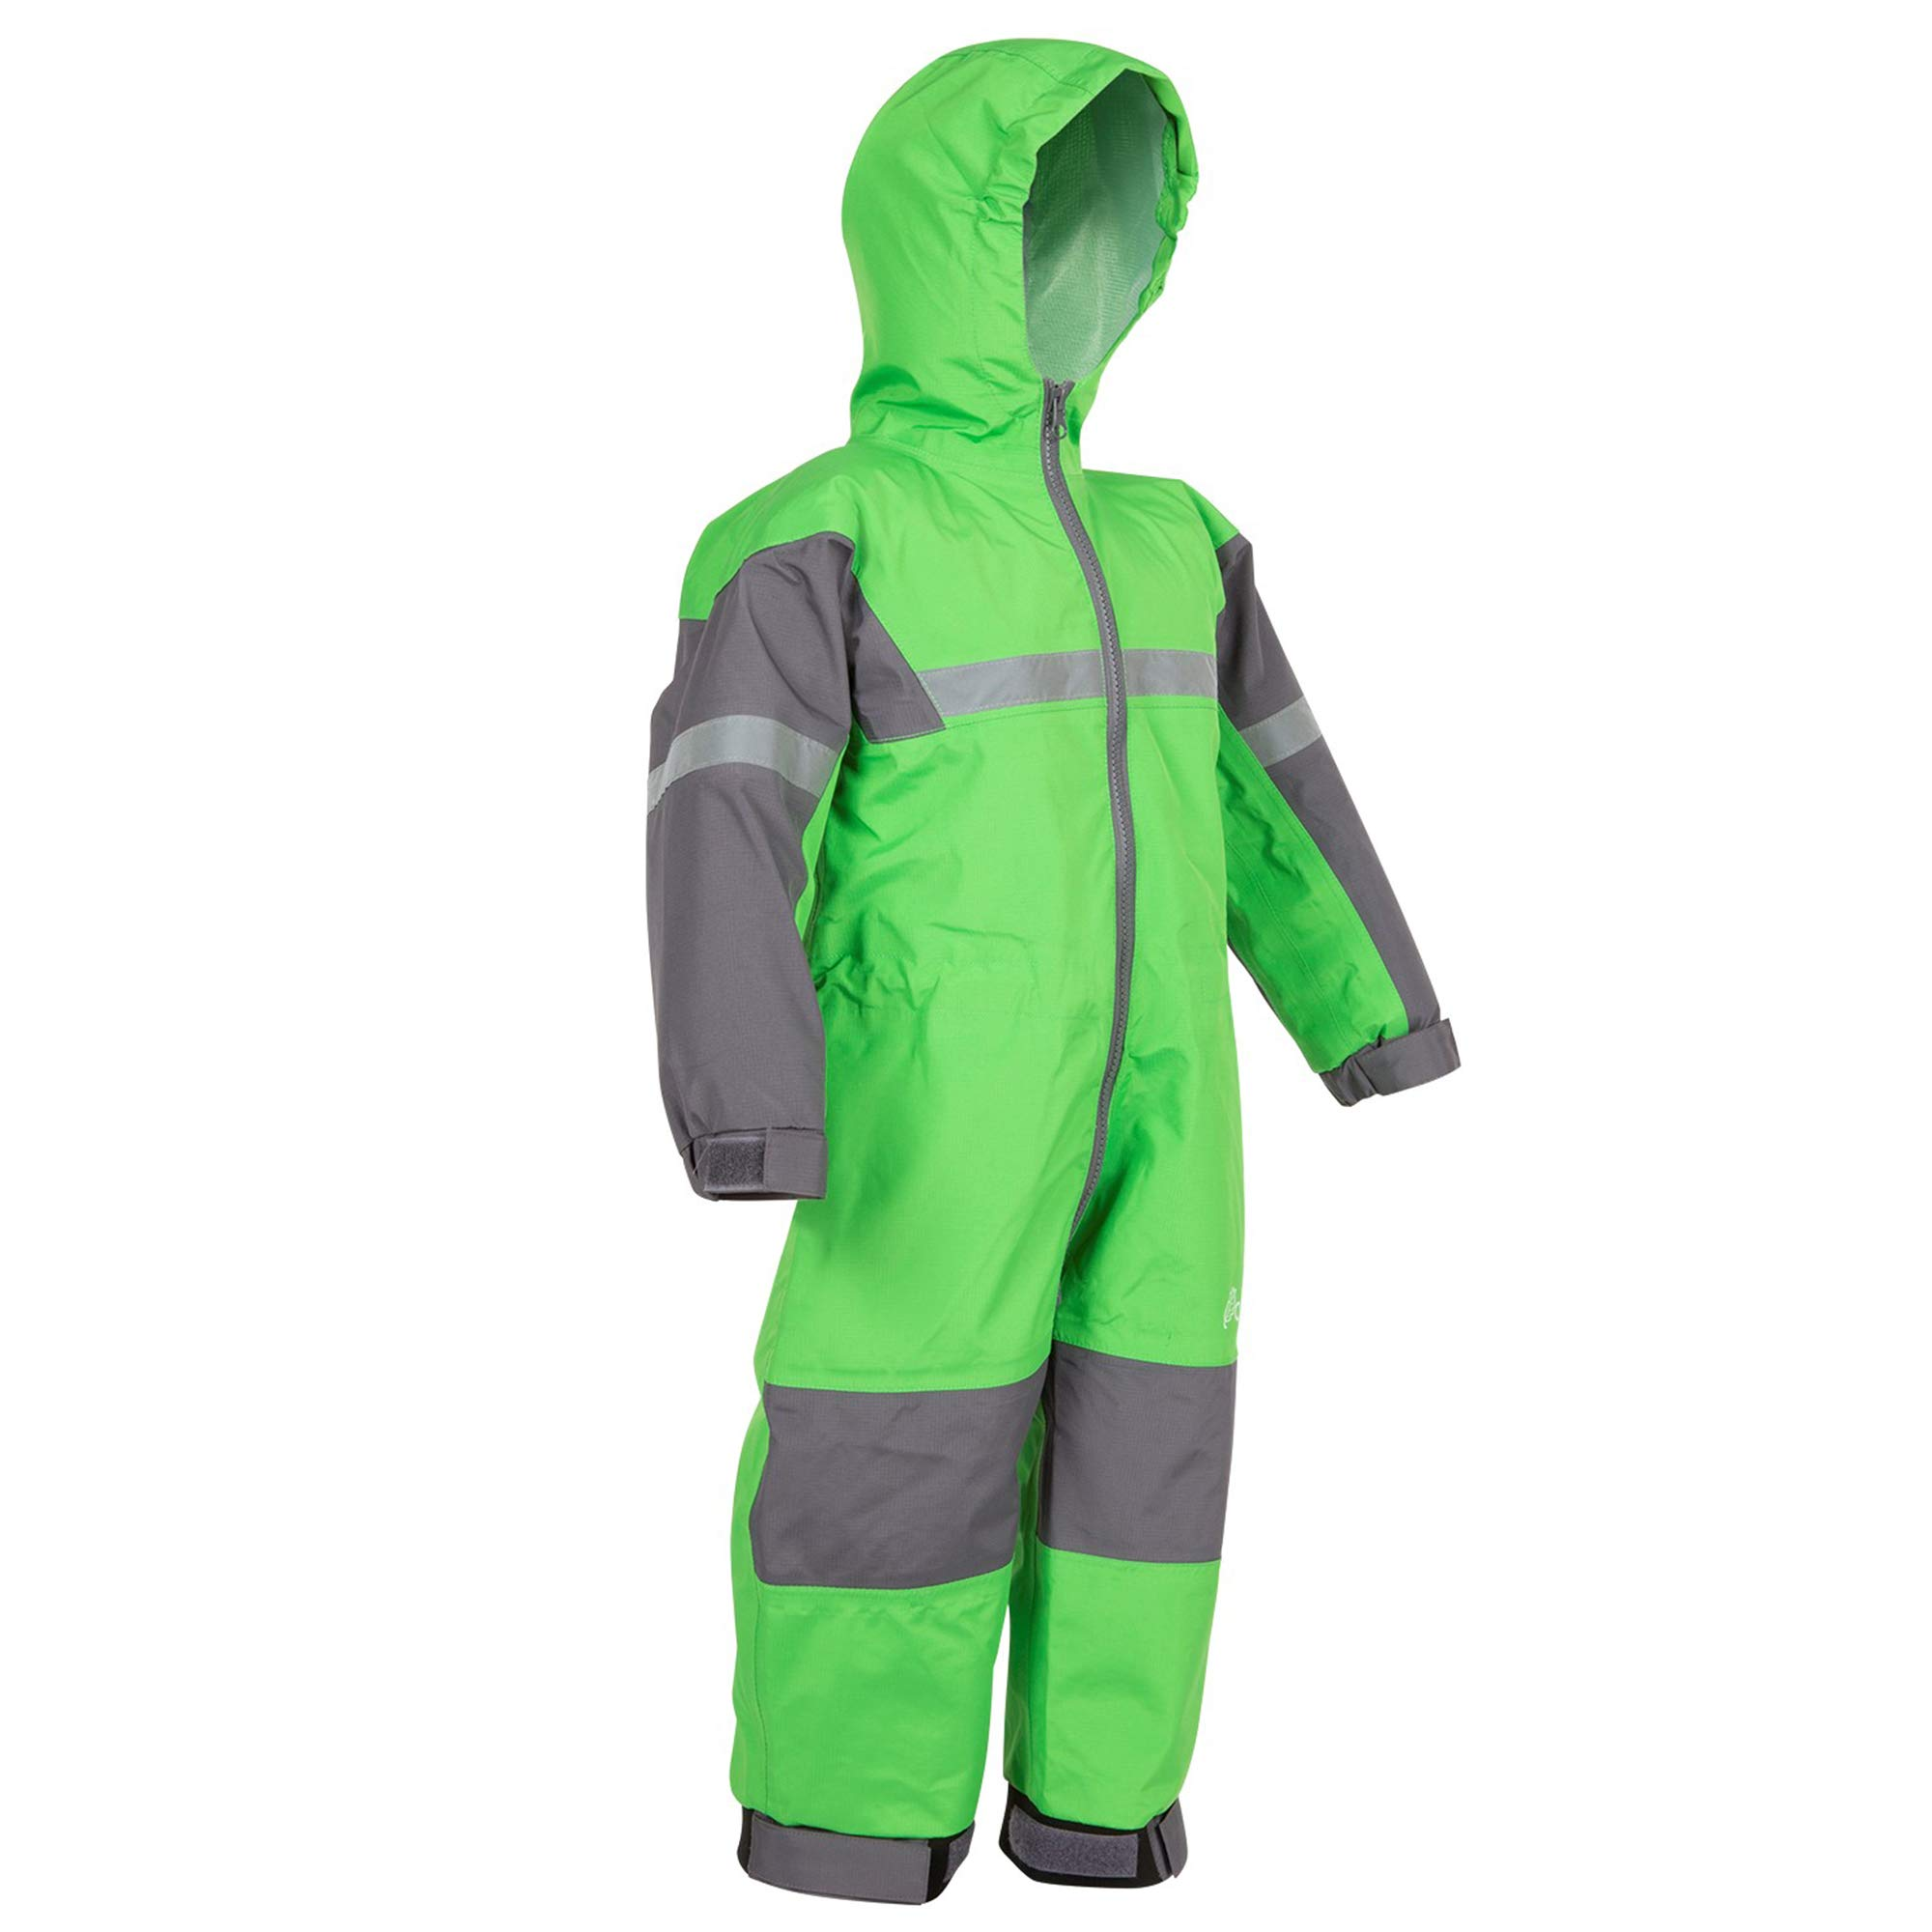 OAKI Rain Suit Kids - Toddler Snowsuit - One Piece Rain Jacket/Pant for Girls & Boys Classic Green, 3T Toddler by OAKI